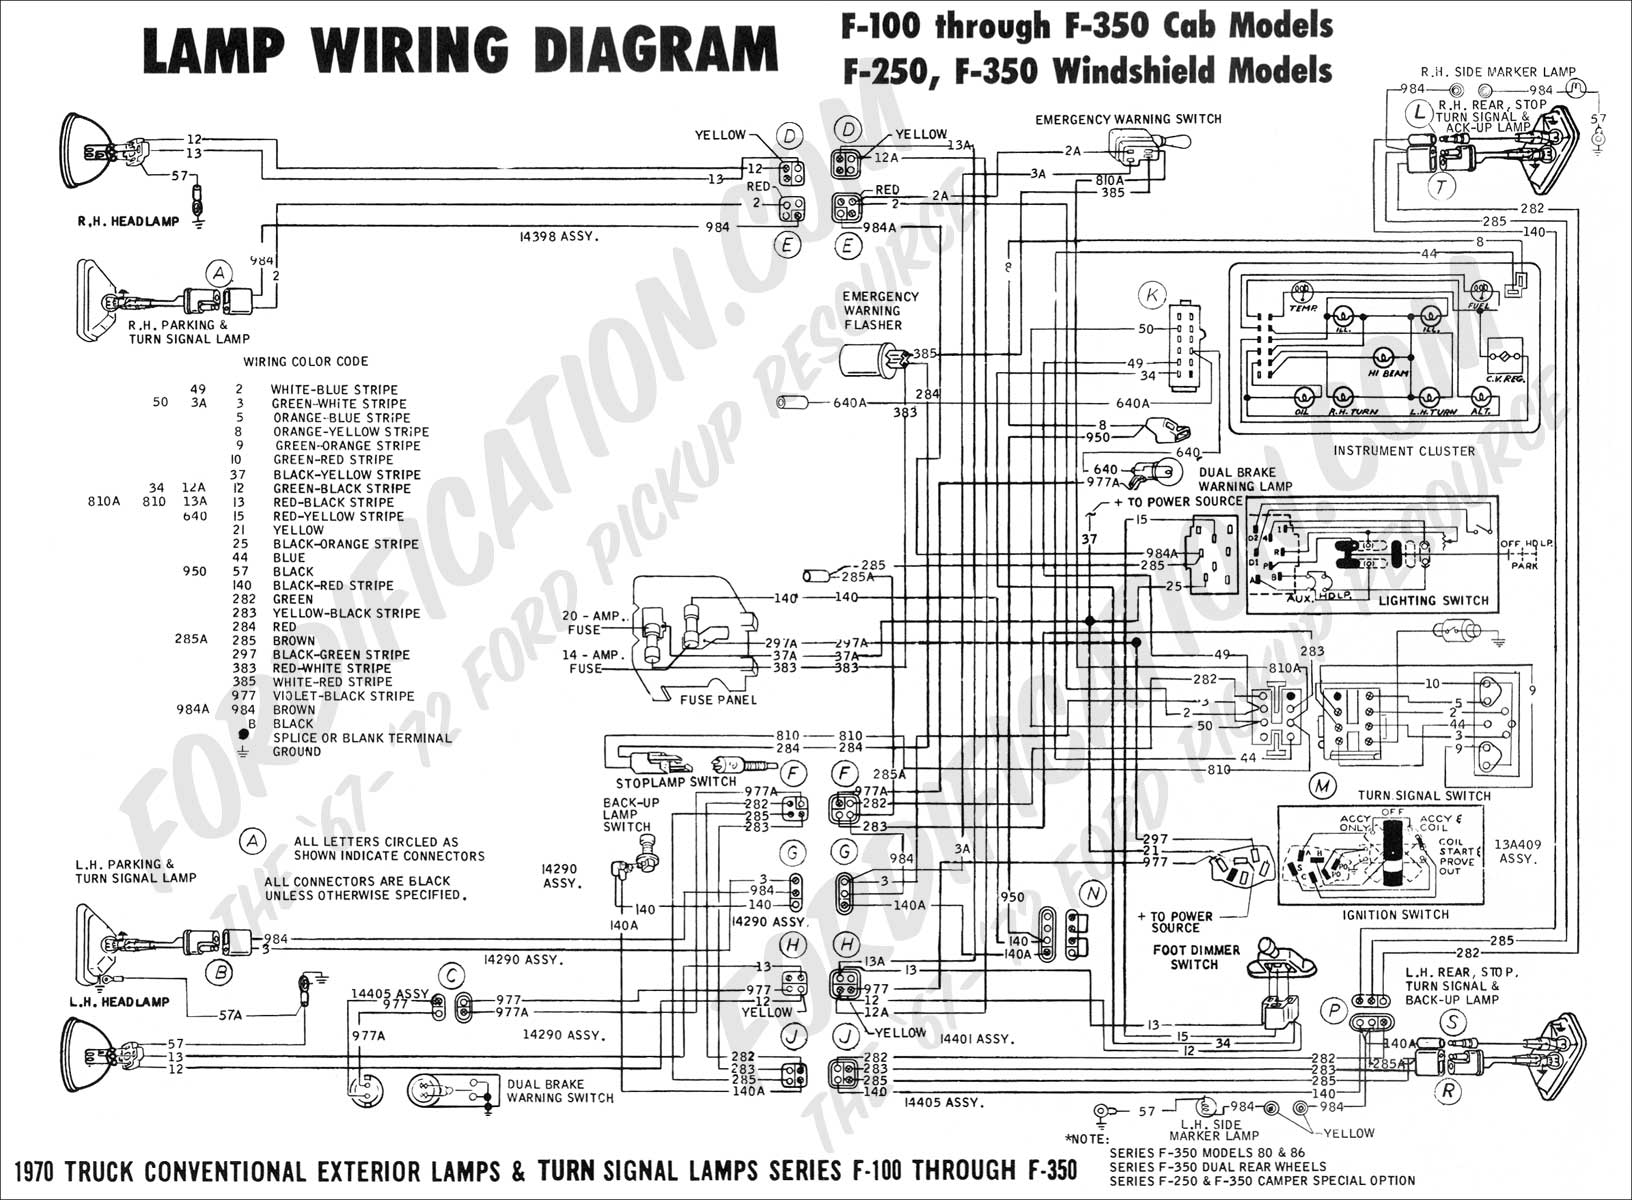 2004 bmw 325i engine diagram with 2007 Peterbilt Headlight Wiring Diagram on 0twrc 99 Ford Explorer Eddie Bauer Fan Speed Climate Control System moreover 02 BASICS Replacing Your Drive Belt mobile moreover 2004 Mini Cooper S Fuel Filter in addition 99 Stratus Camshaft Location furthermore 2007 Peterbilt Headlight Wiring Diagram.